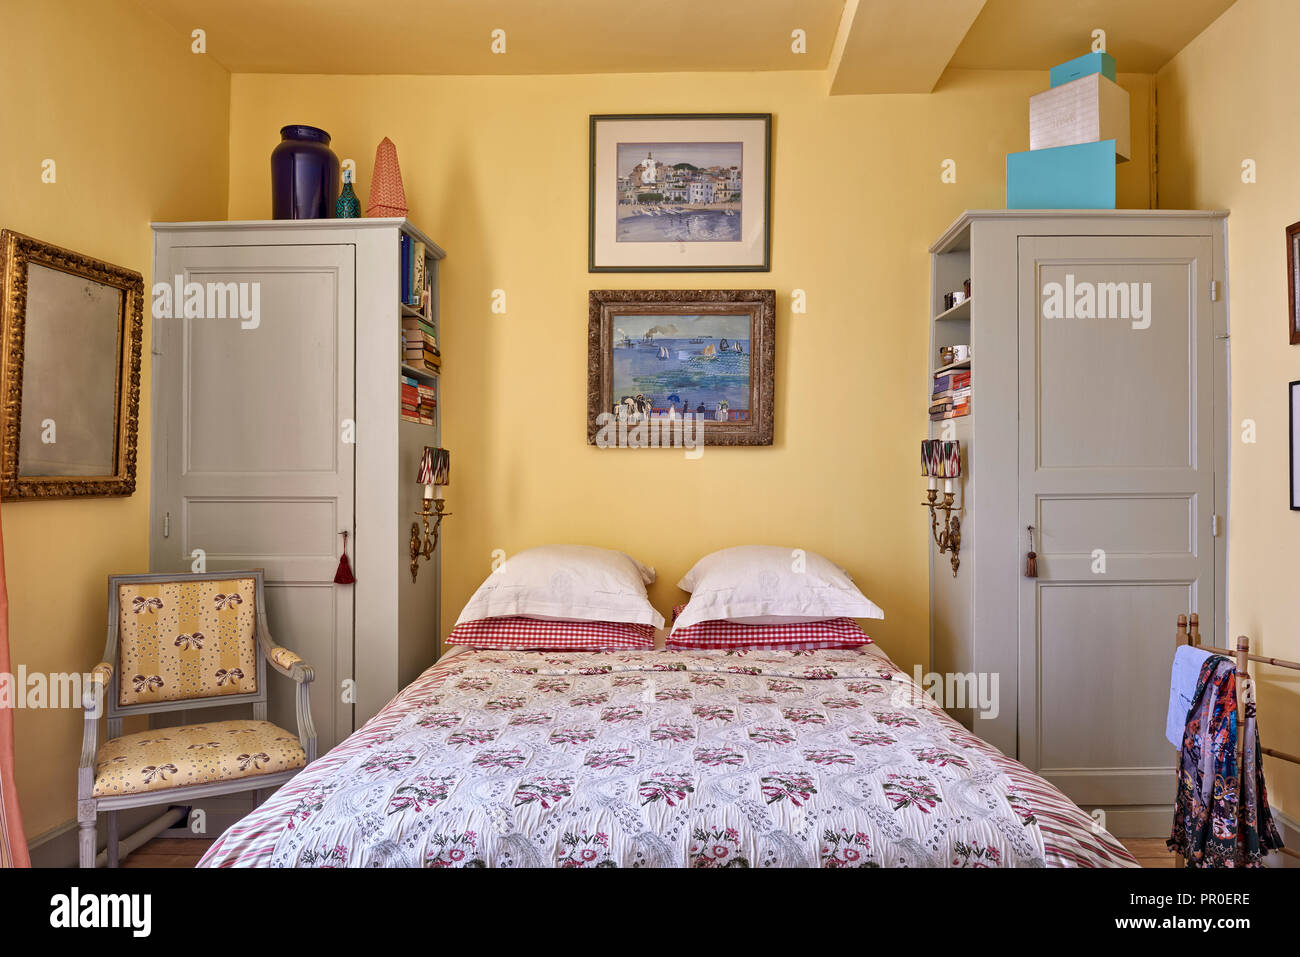 Framed artwork by Deliss family above double bed with built in cupboards - Stock Image